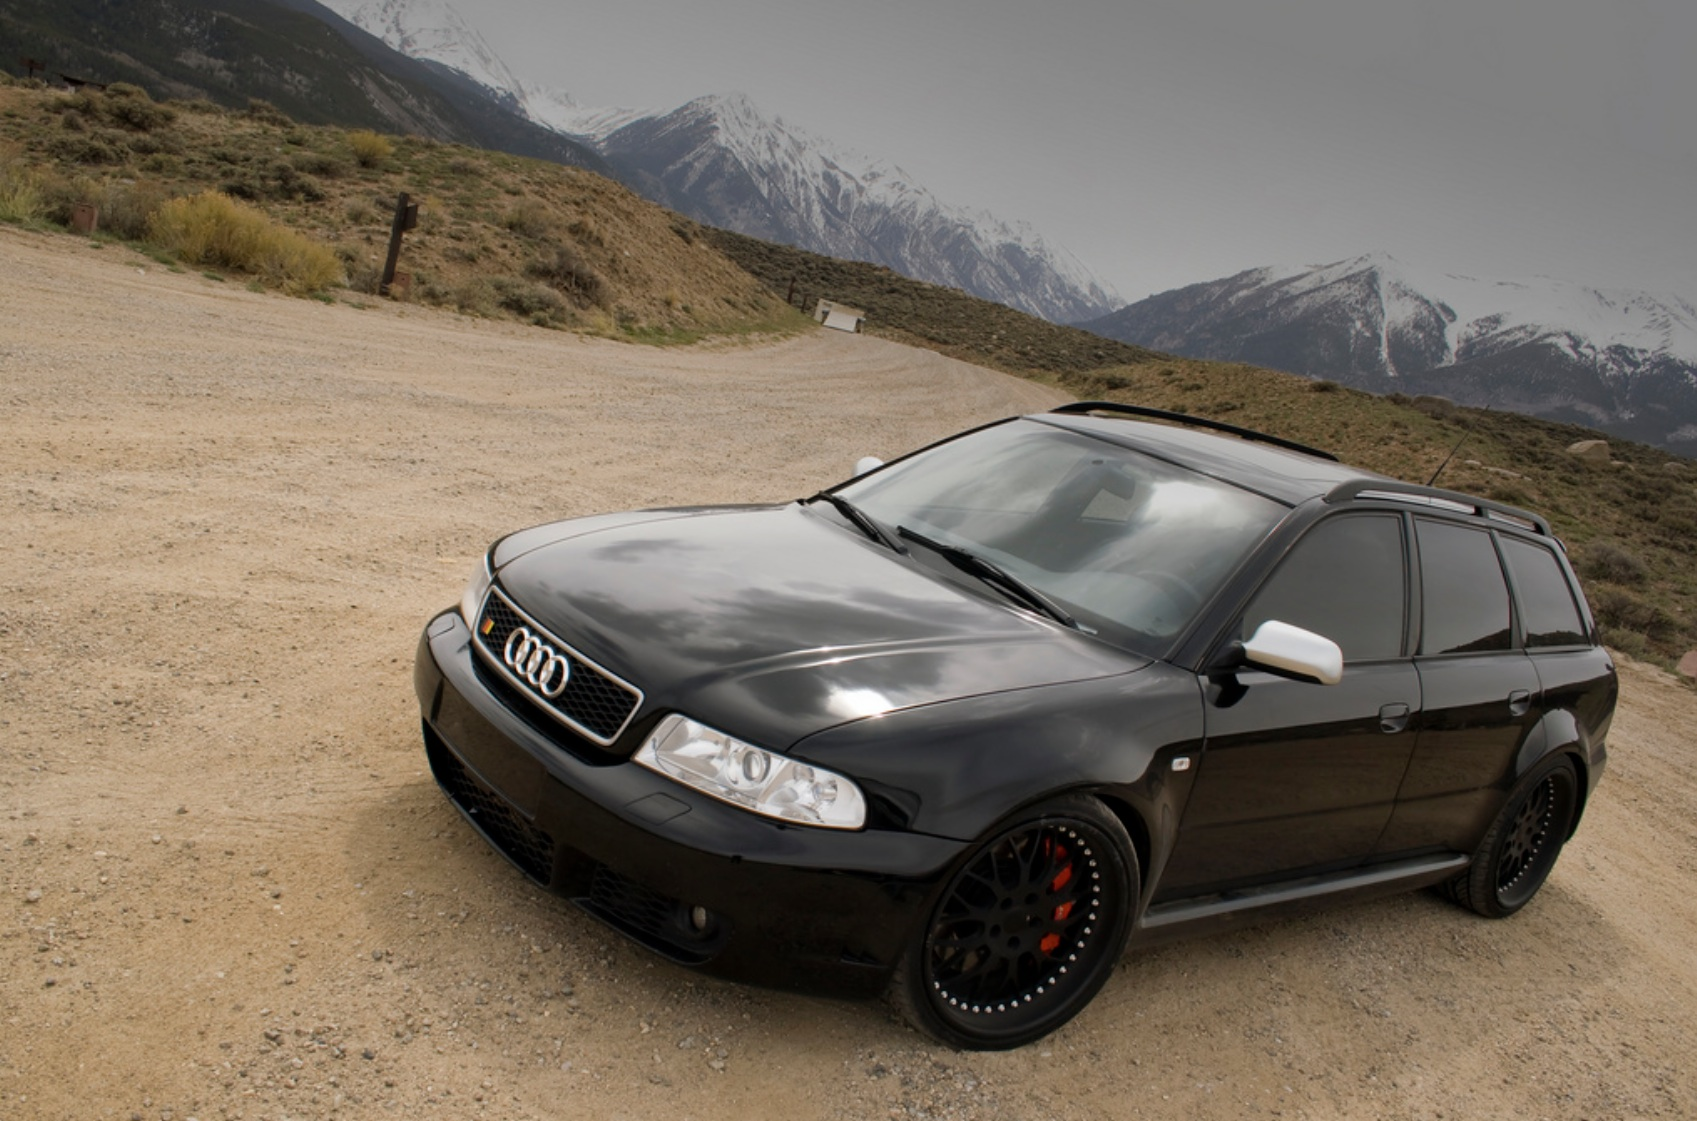 2001 Audi S4 Avant (RS4 Conversion)